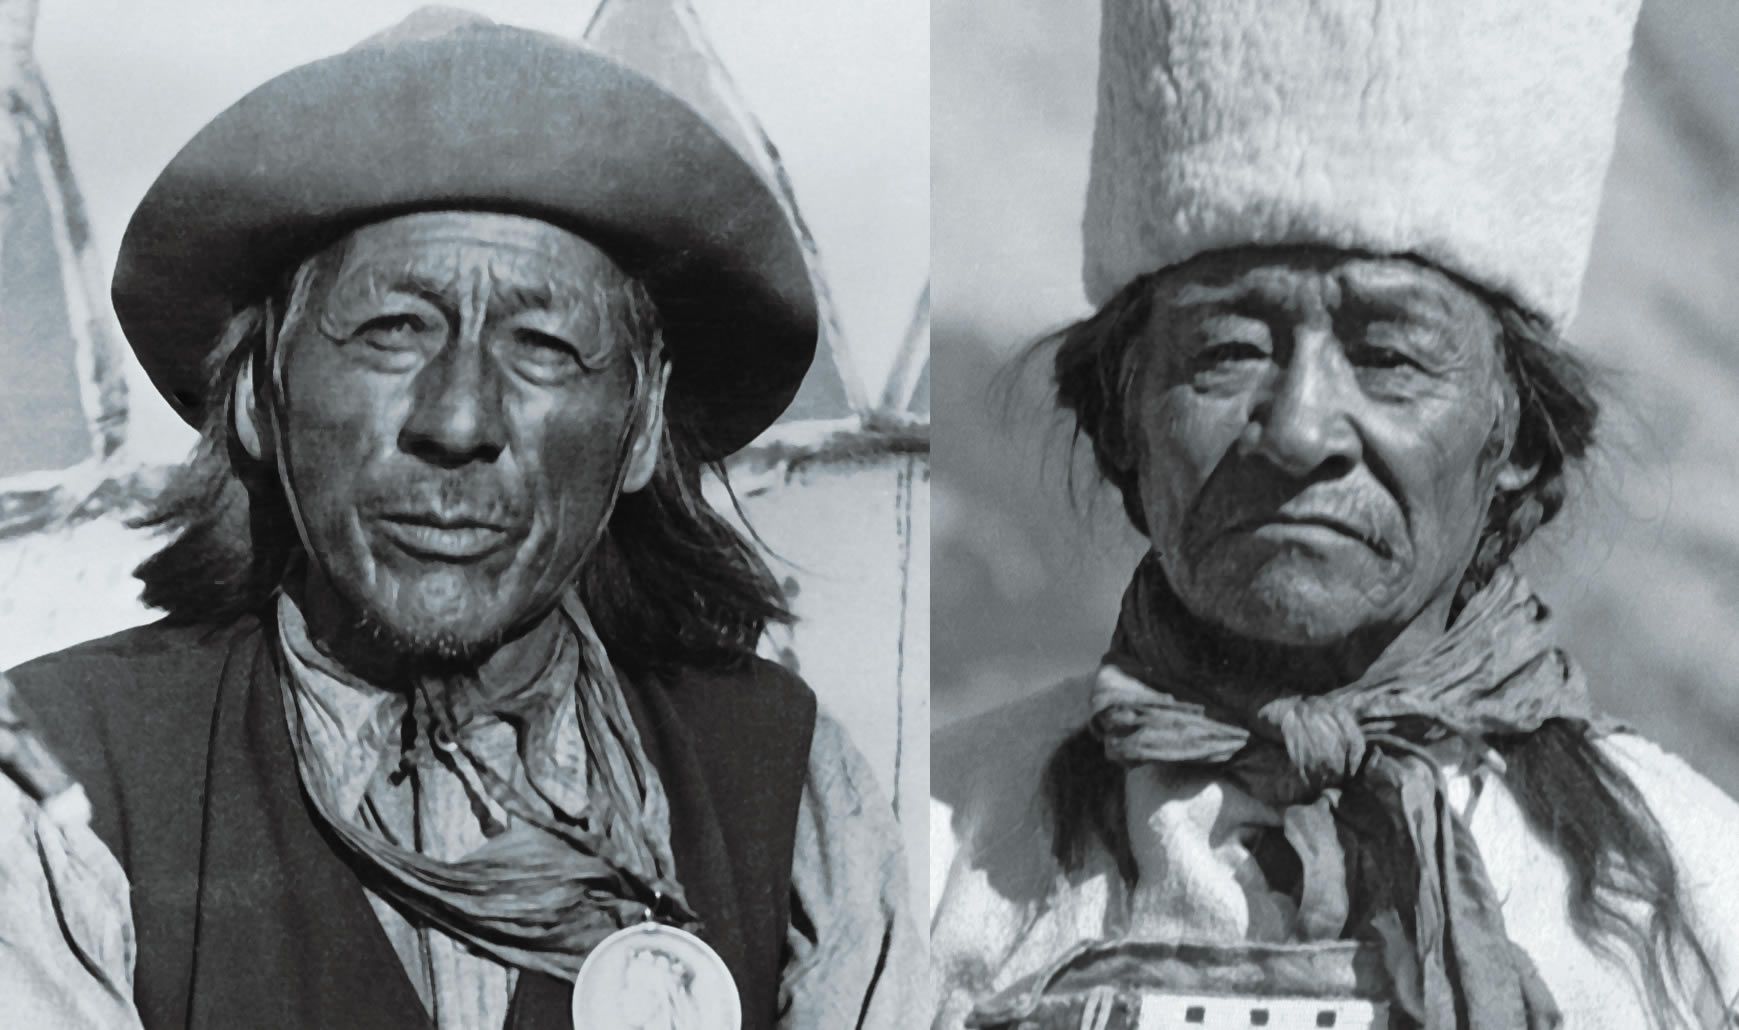 Tom Chiniquay (left). William Twin (right). Employed by the CPR at Lake Louise in 1894, the two Nakoda men spent the summer building trails and guiding tourists. They are rarely celebrated for what was likely the Canadian Rockies' first recorded mountain rescue—using an improvised litter. [Photos] Glenbow Archives